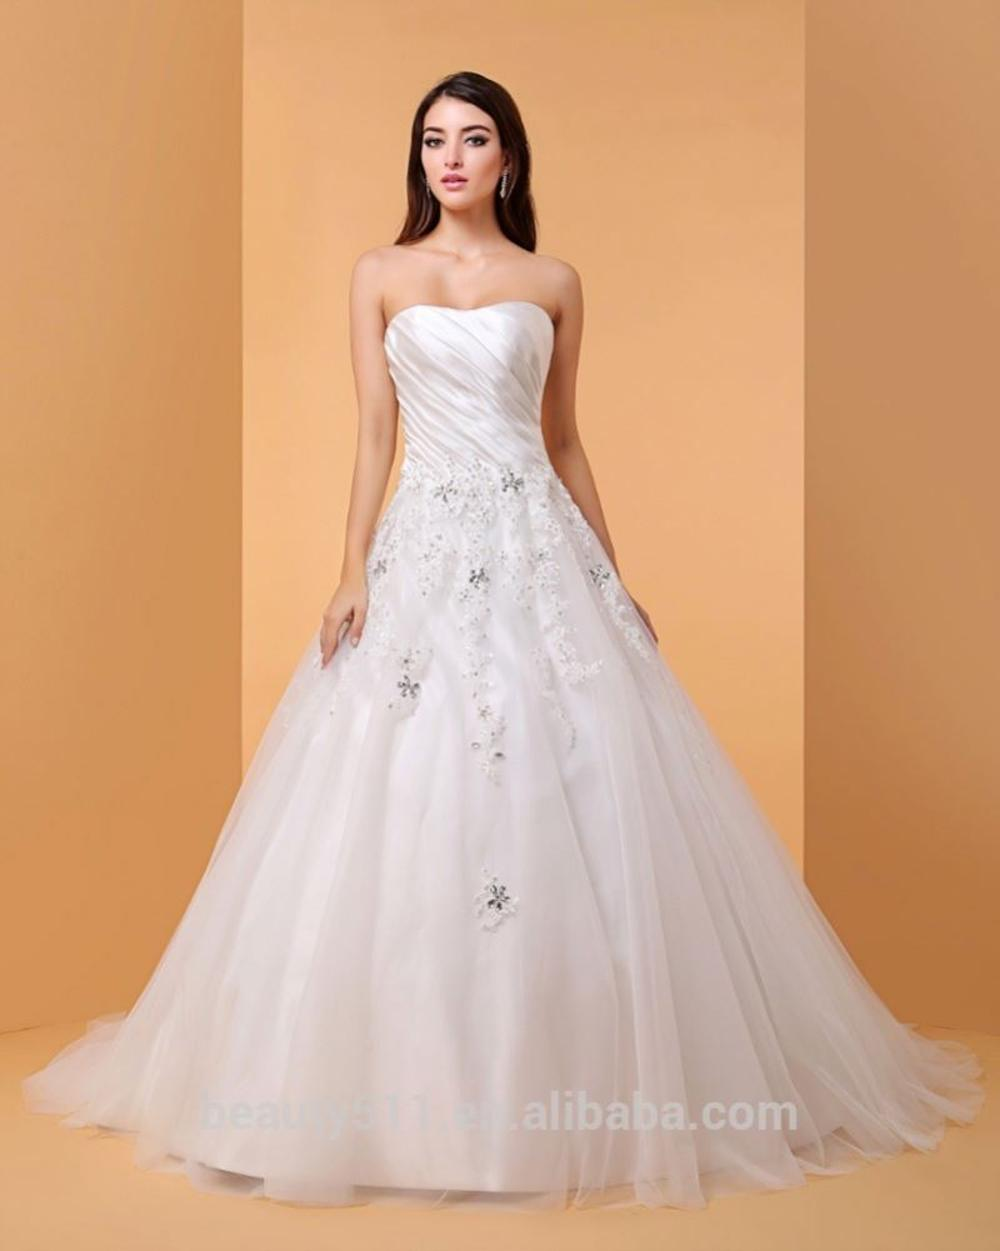 Ball Gown Wedding Dress Sparkle &amp; Shine Floor-length Sweetheart Lace bridal gown <strong>P064</strong>